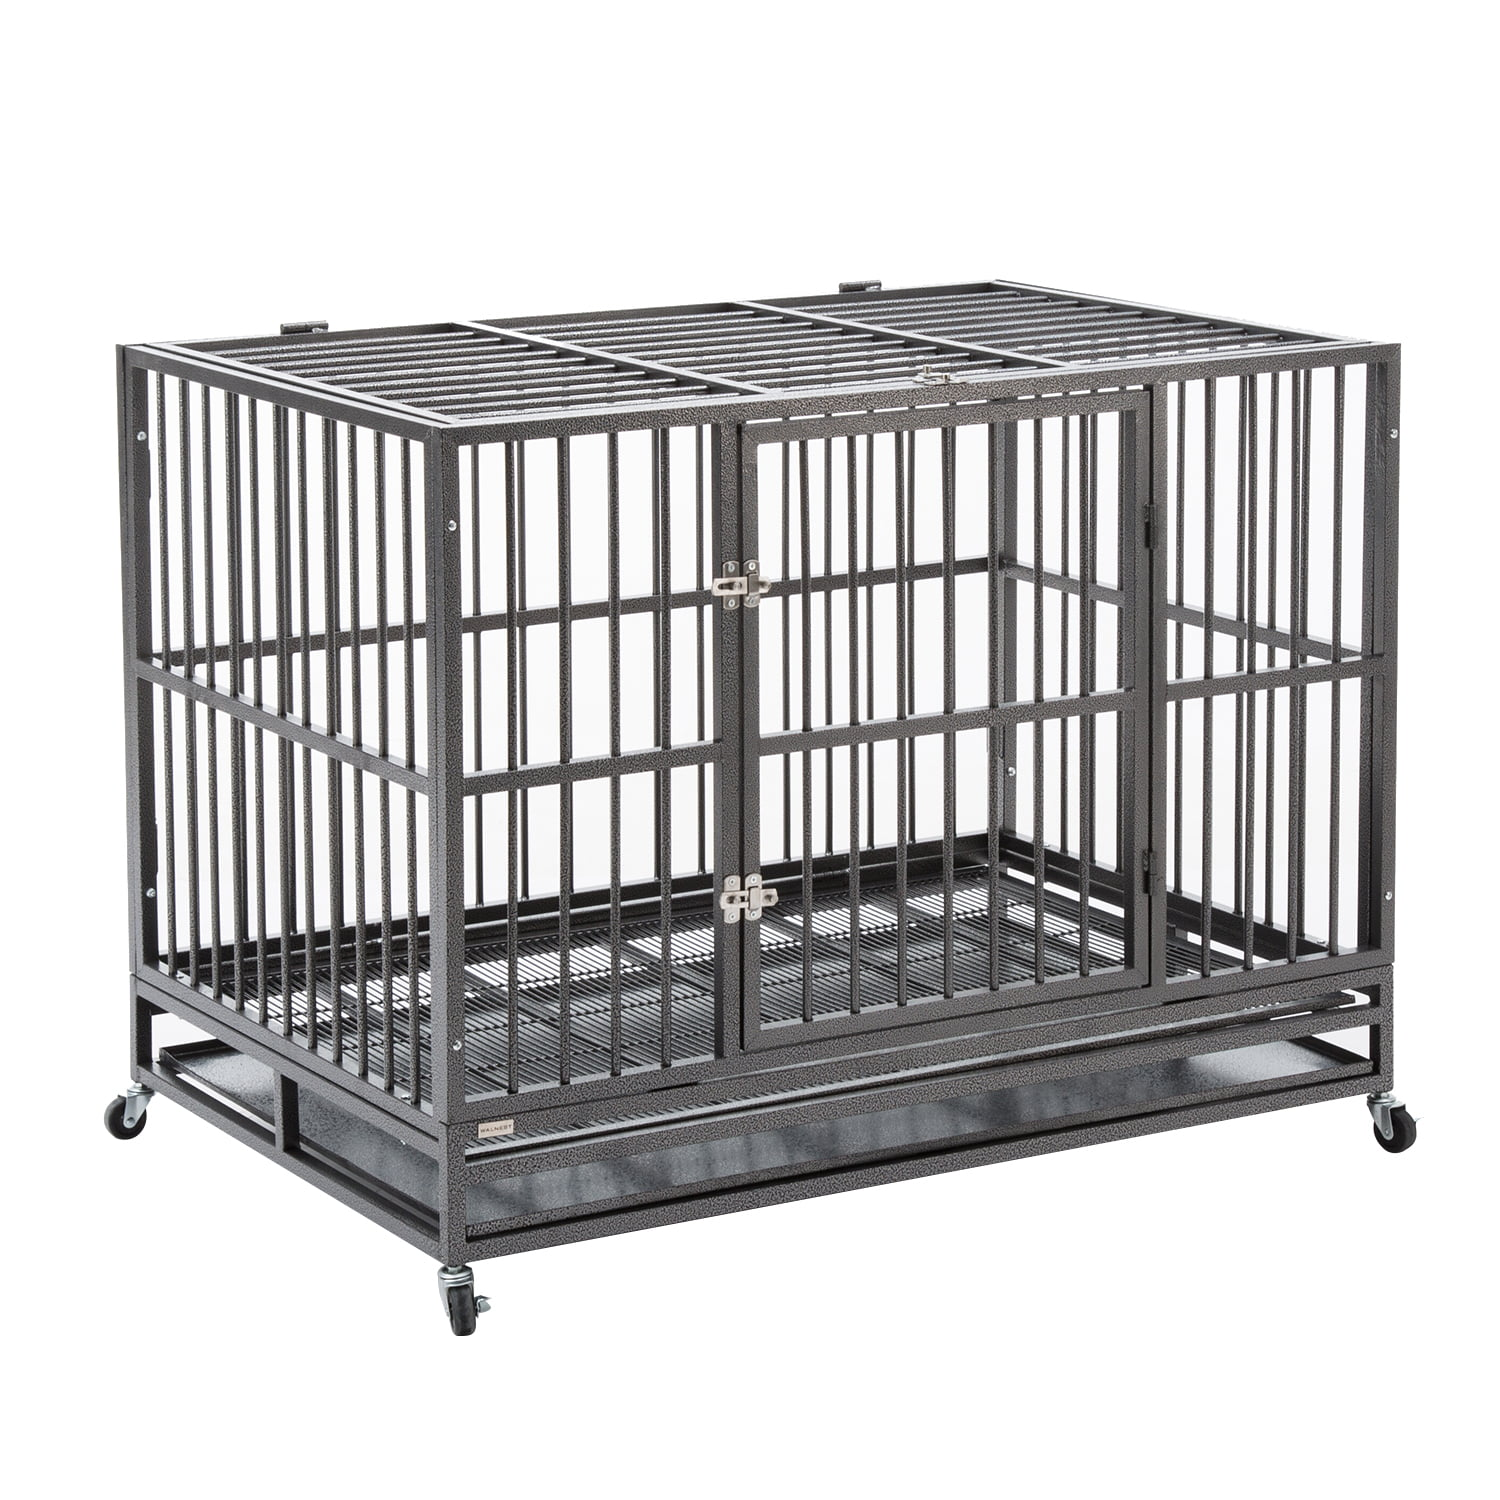 "37"" 42'' 48"" Heavy Duty Dog Cage Crate Kennel Metal Pet Playpen Portable w  Tray by"